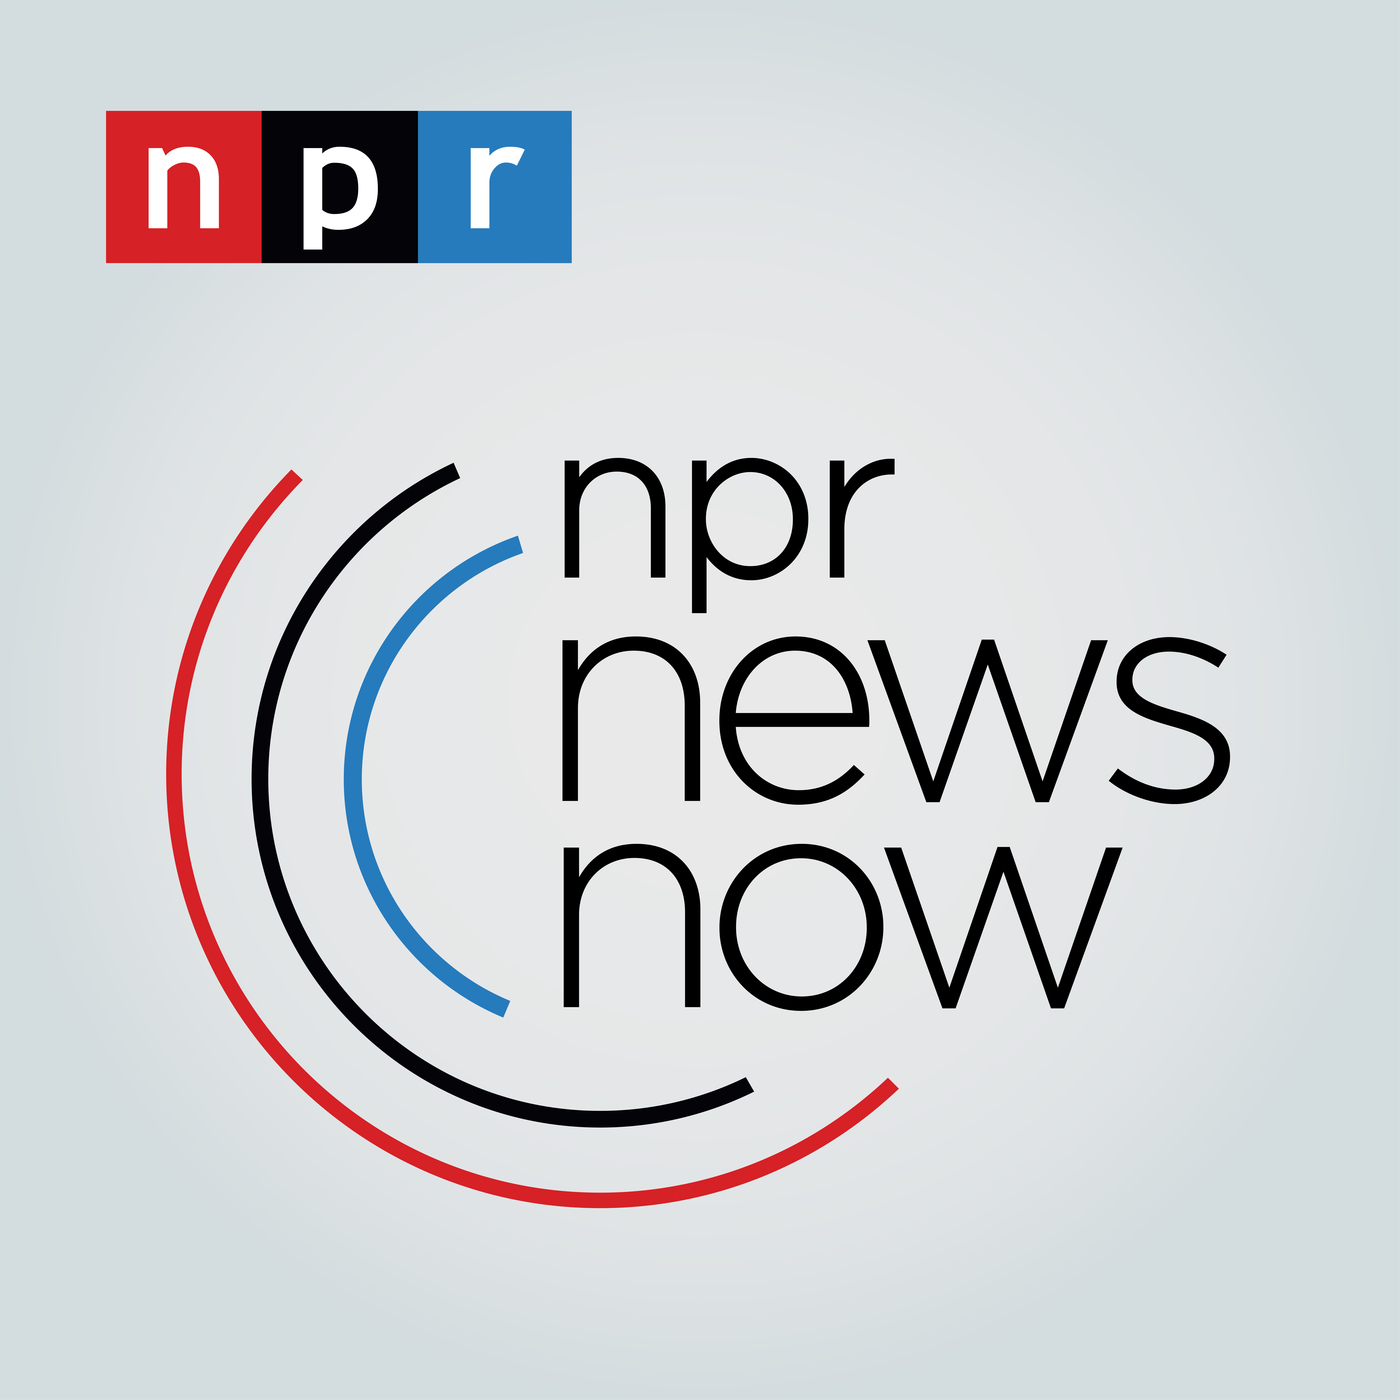 Trump announces plan to lower drug prices